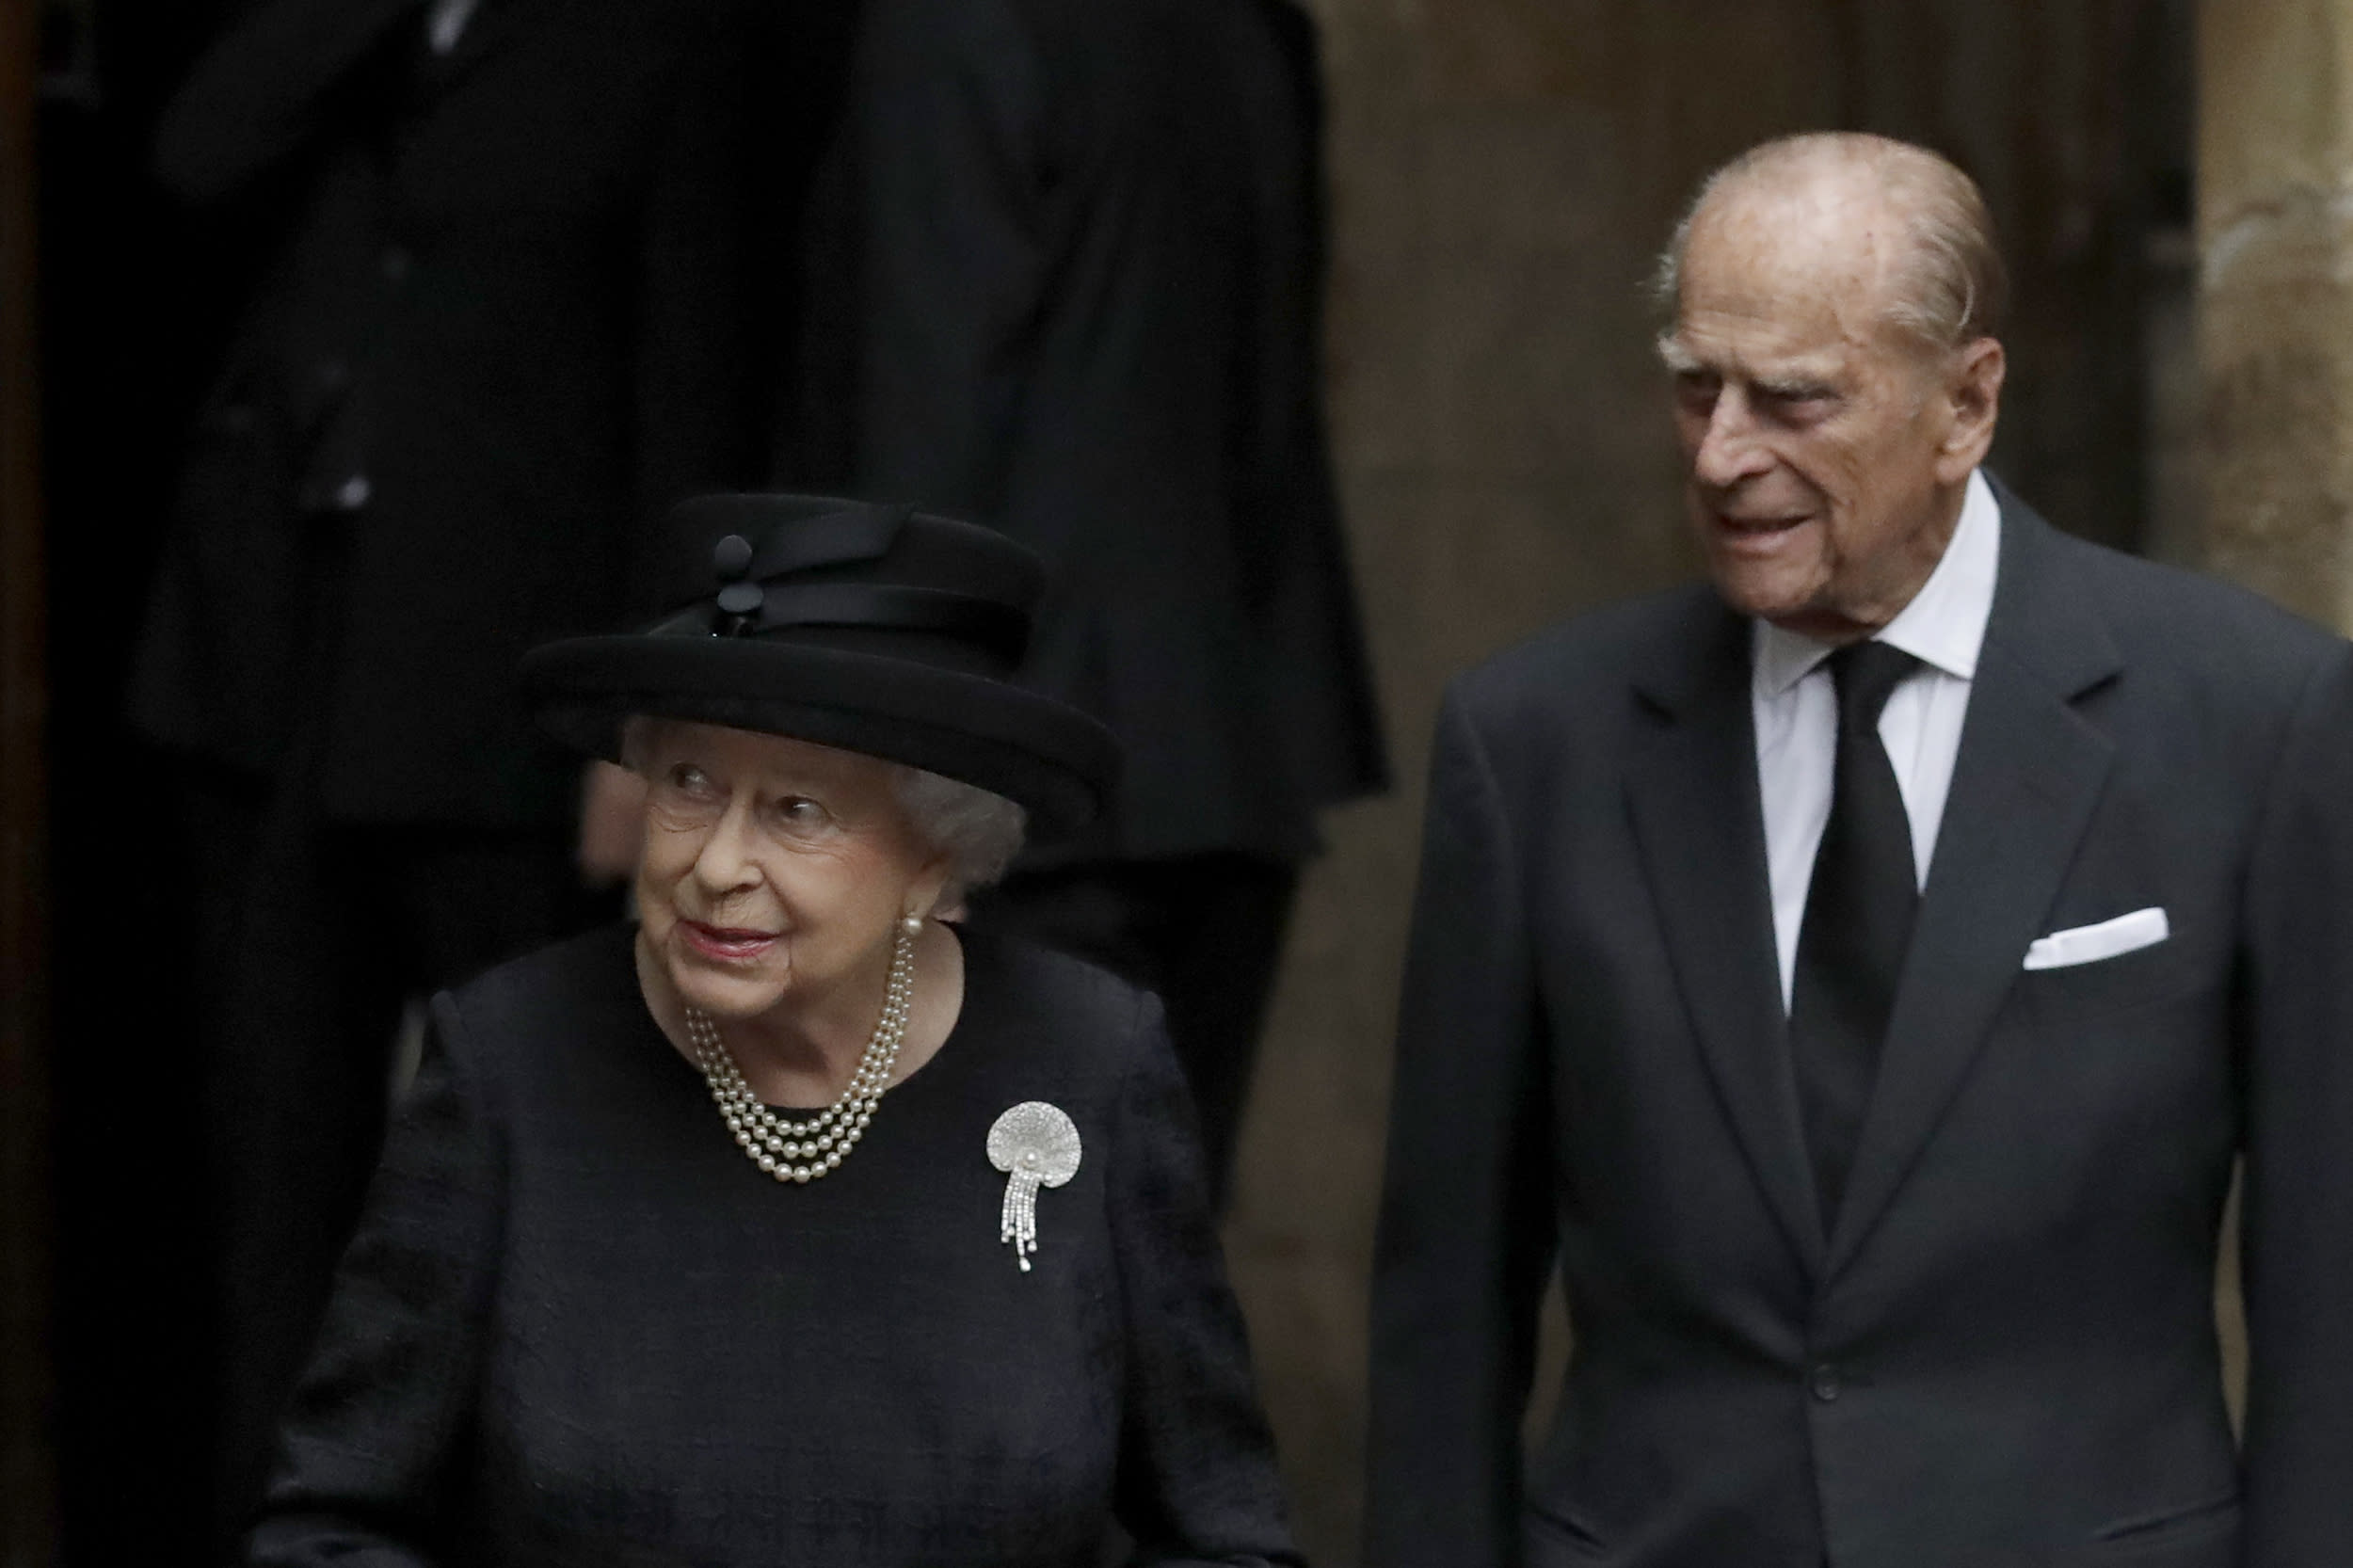 Britain's Queen Elizabeth II and her husband Prince Philip leave after attending the funeral service of Patricia Knatchbull, the Countess Mountbatten of Burma at St Paul's Church in Knightsbridge, London, Tuesday, June 27, 2017. (AP Photo/Matt Dunham, Pool)